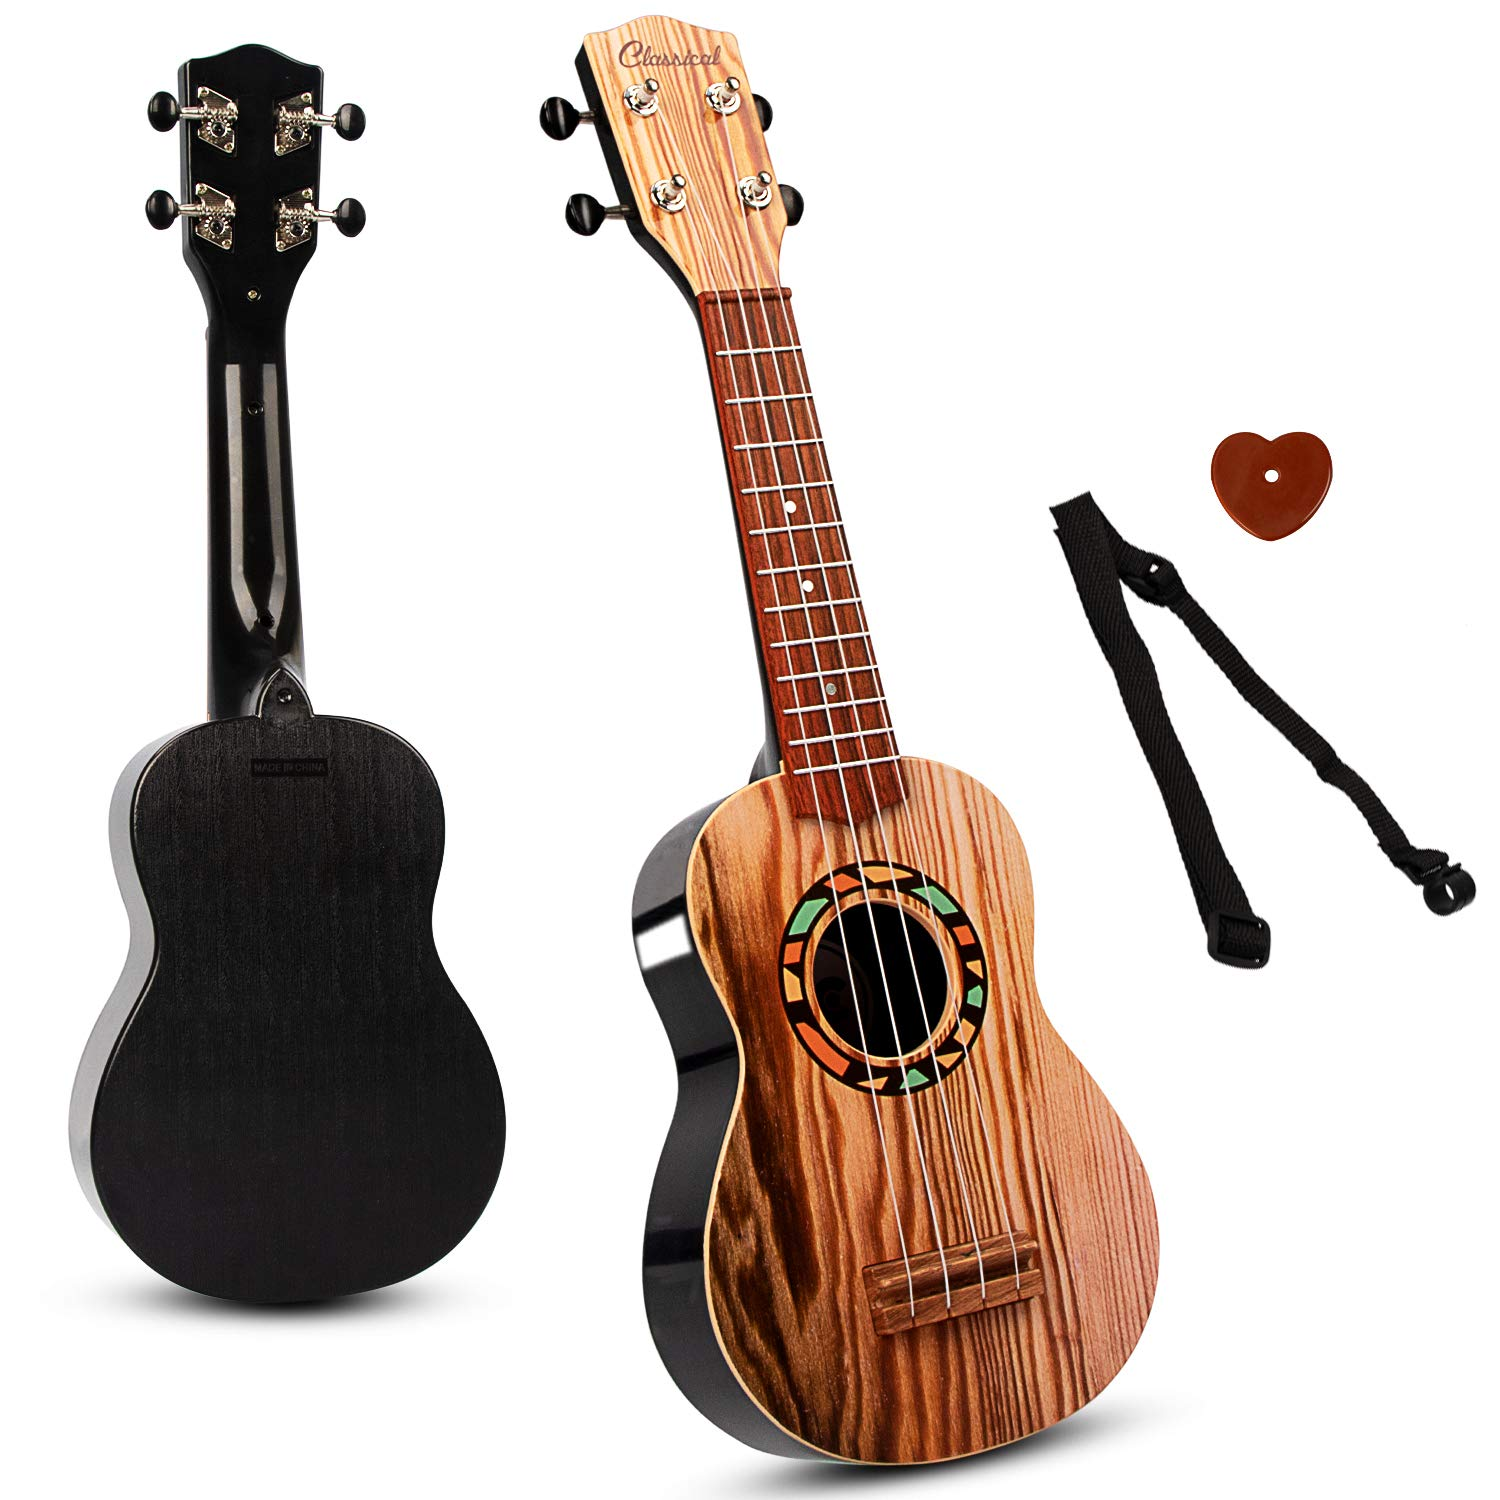 SAOCOOL Ukulele Guitar for Kids, 21 inch Ukulele Guitar Kids Guitar Toy, 4 String Child Guitar Toys for Girls and Boys by SAOCOOL